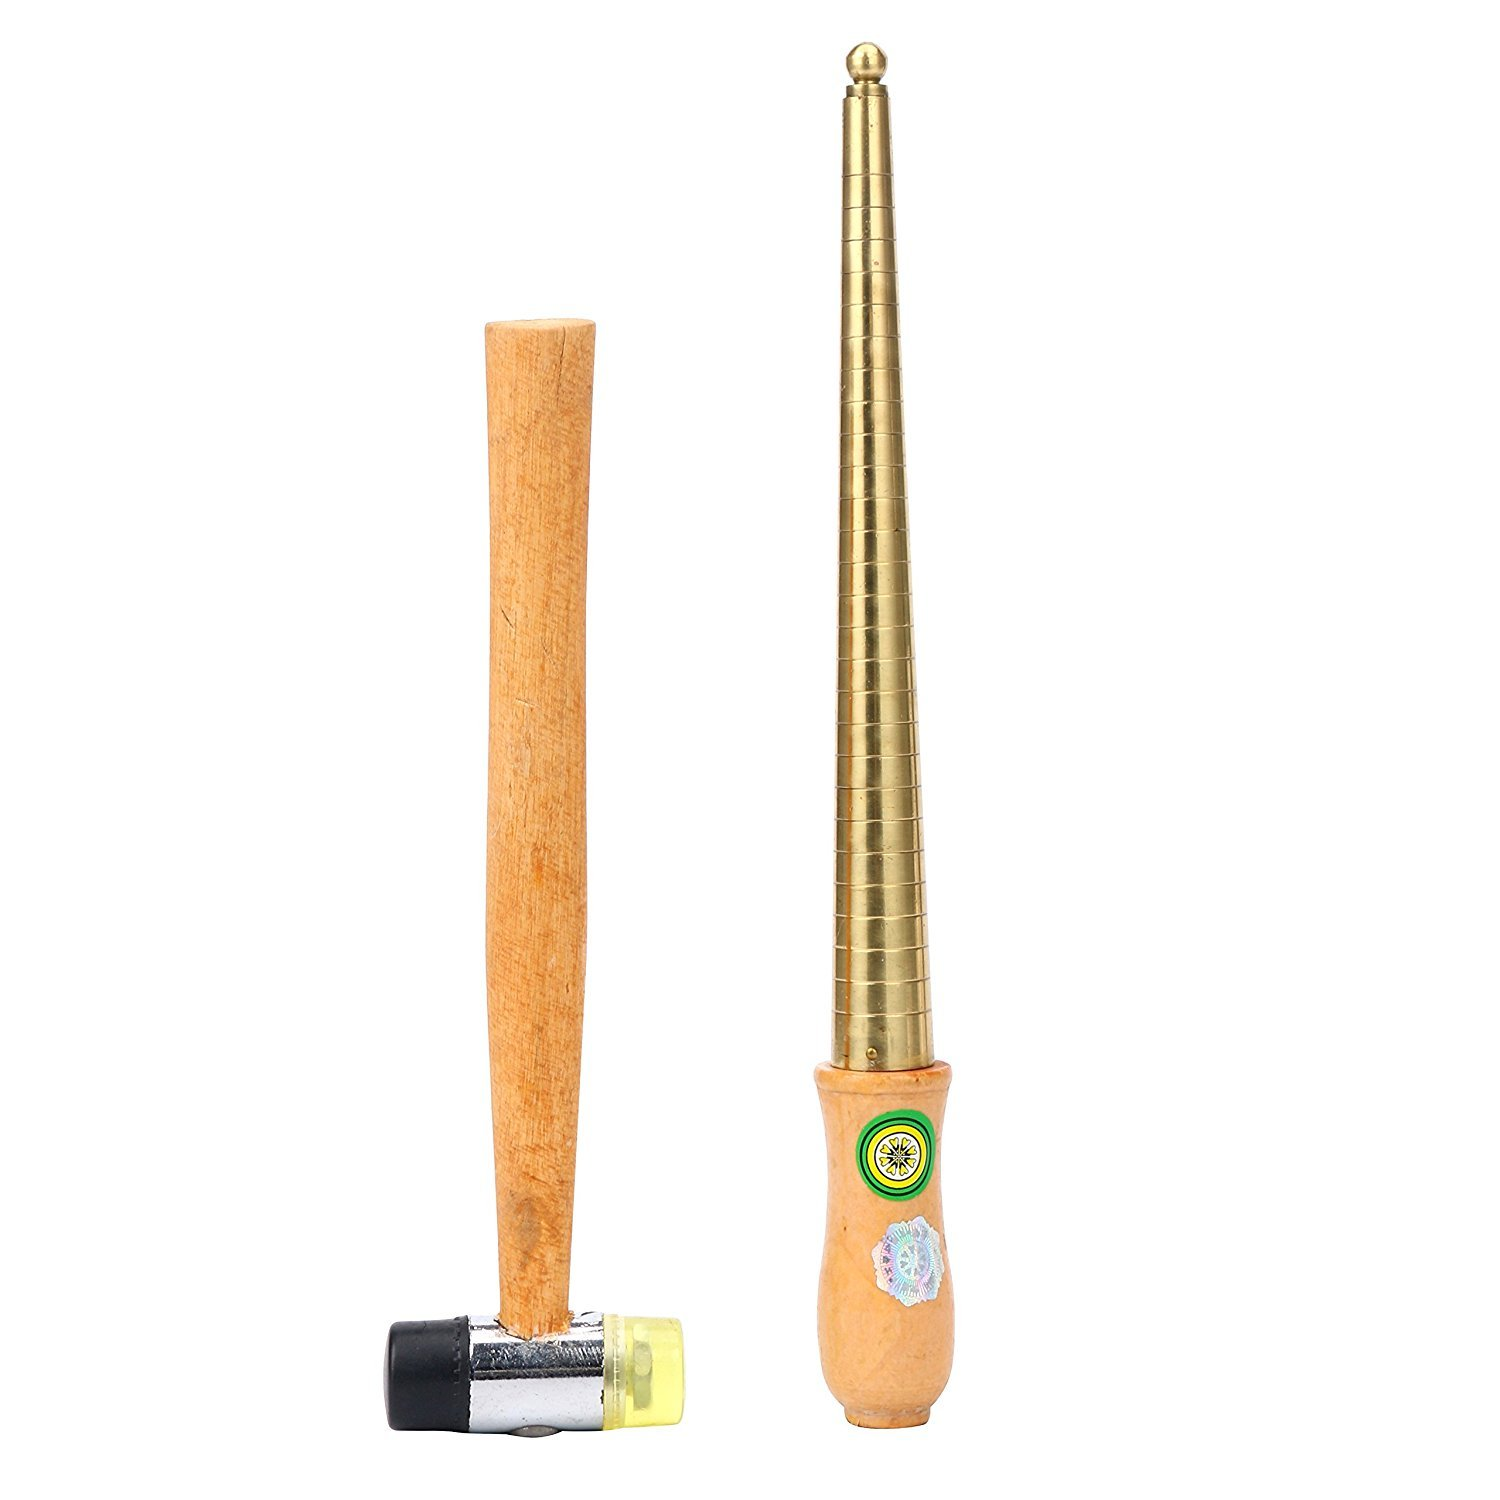 YaeTek STEEL RING MANDREL & NYLON FACE MALLET JEWELRY MAKING TOOL (1-13) Yaemart Corportation